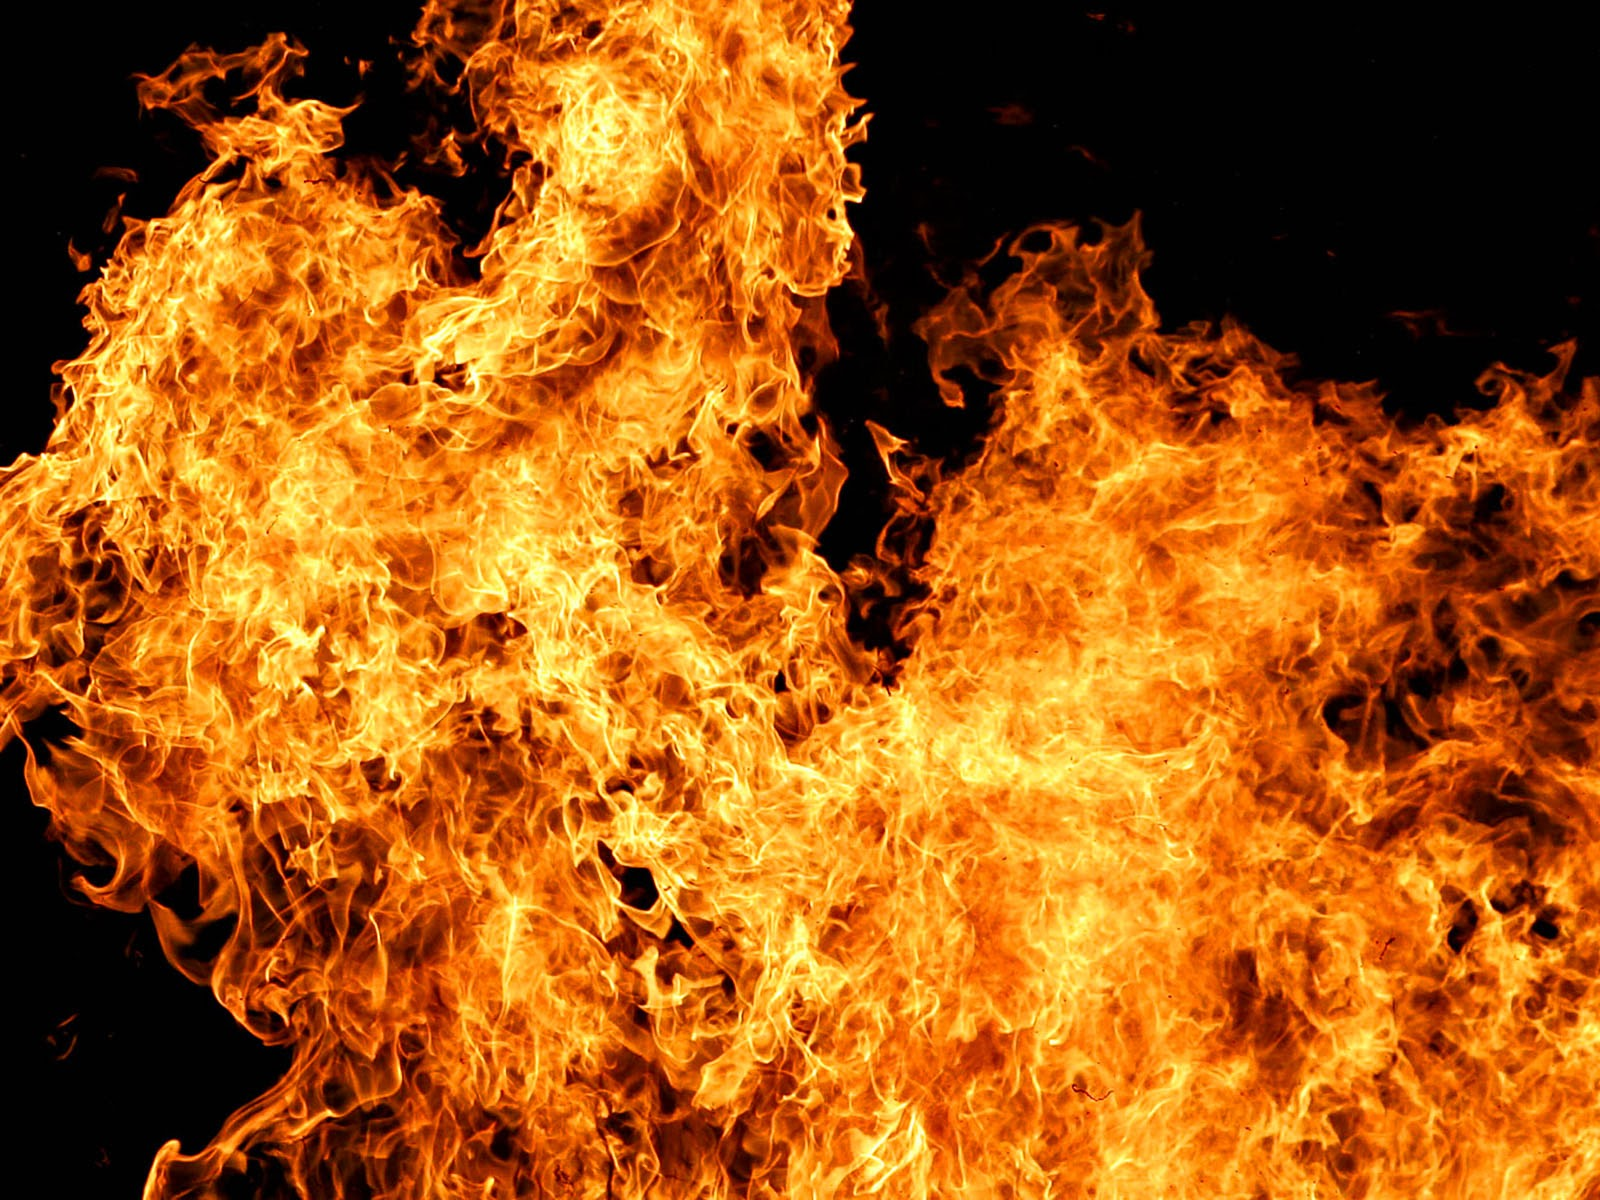 hd wallpapers desktop fire - photo #6